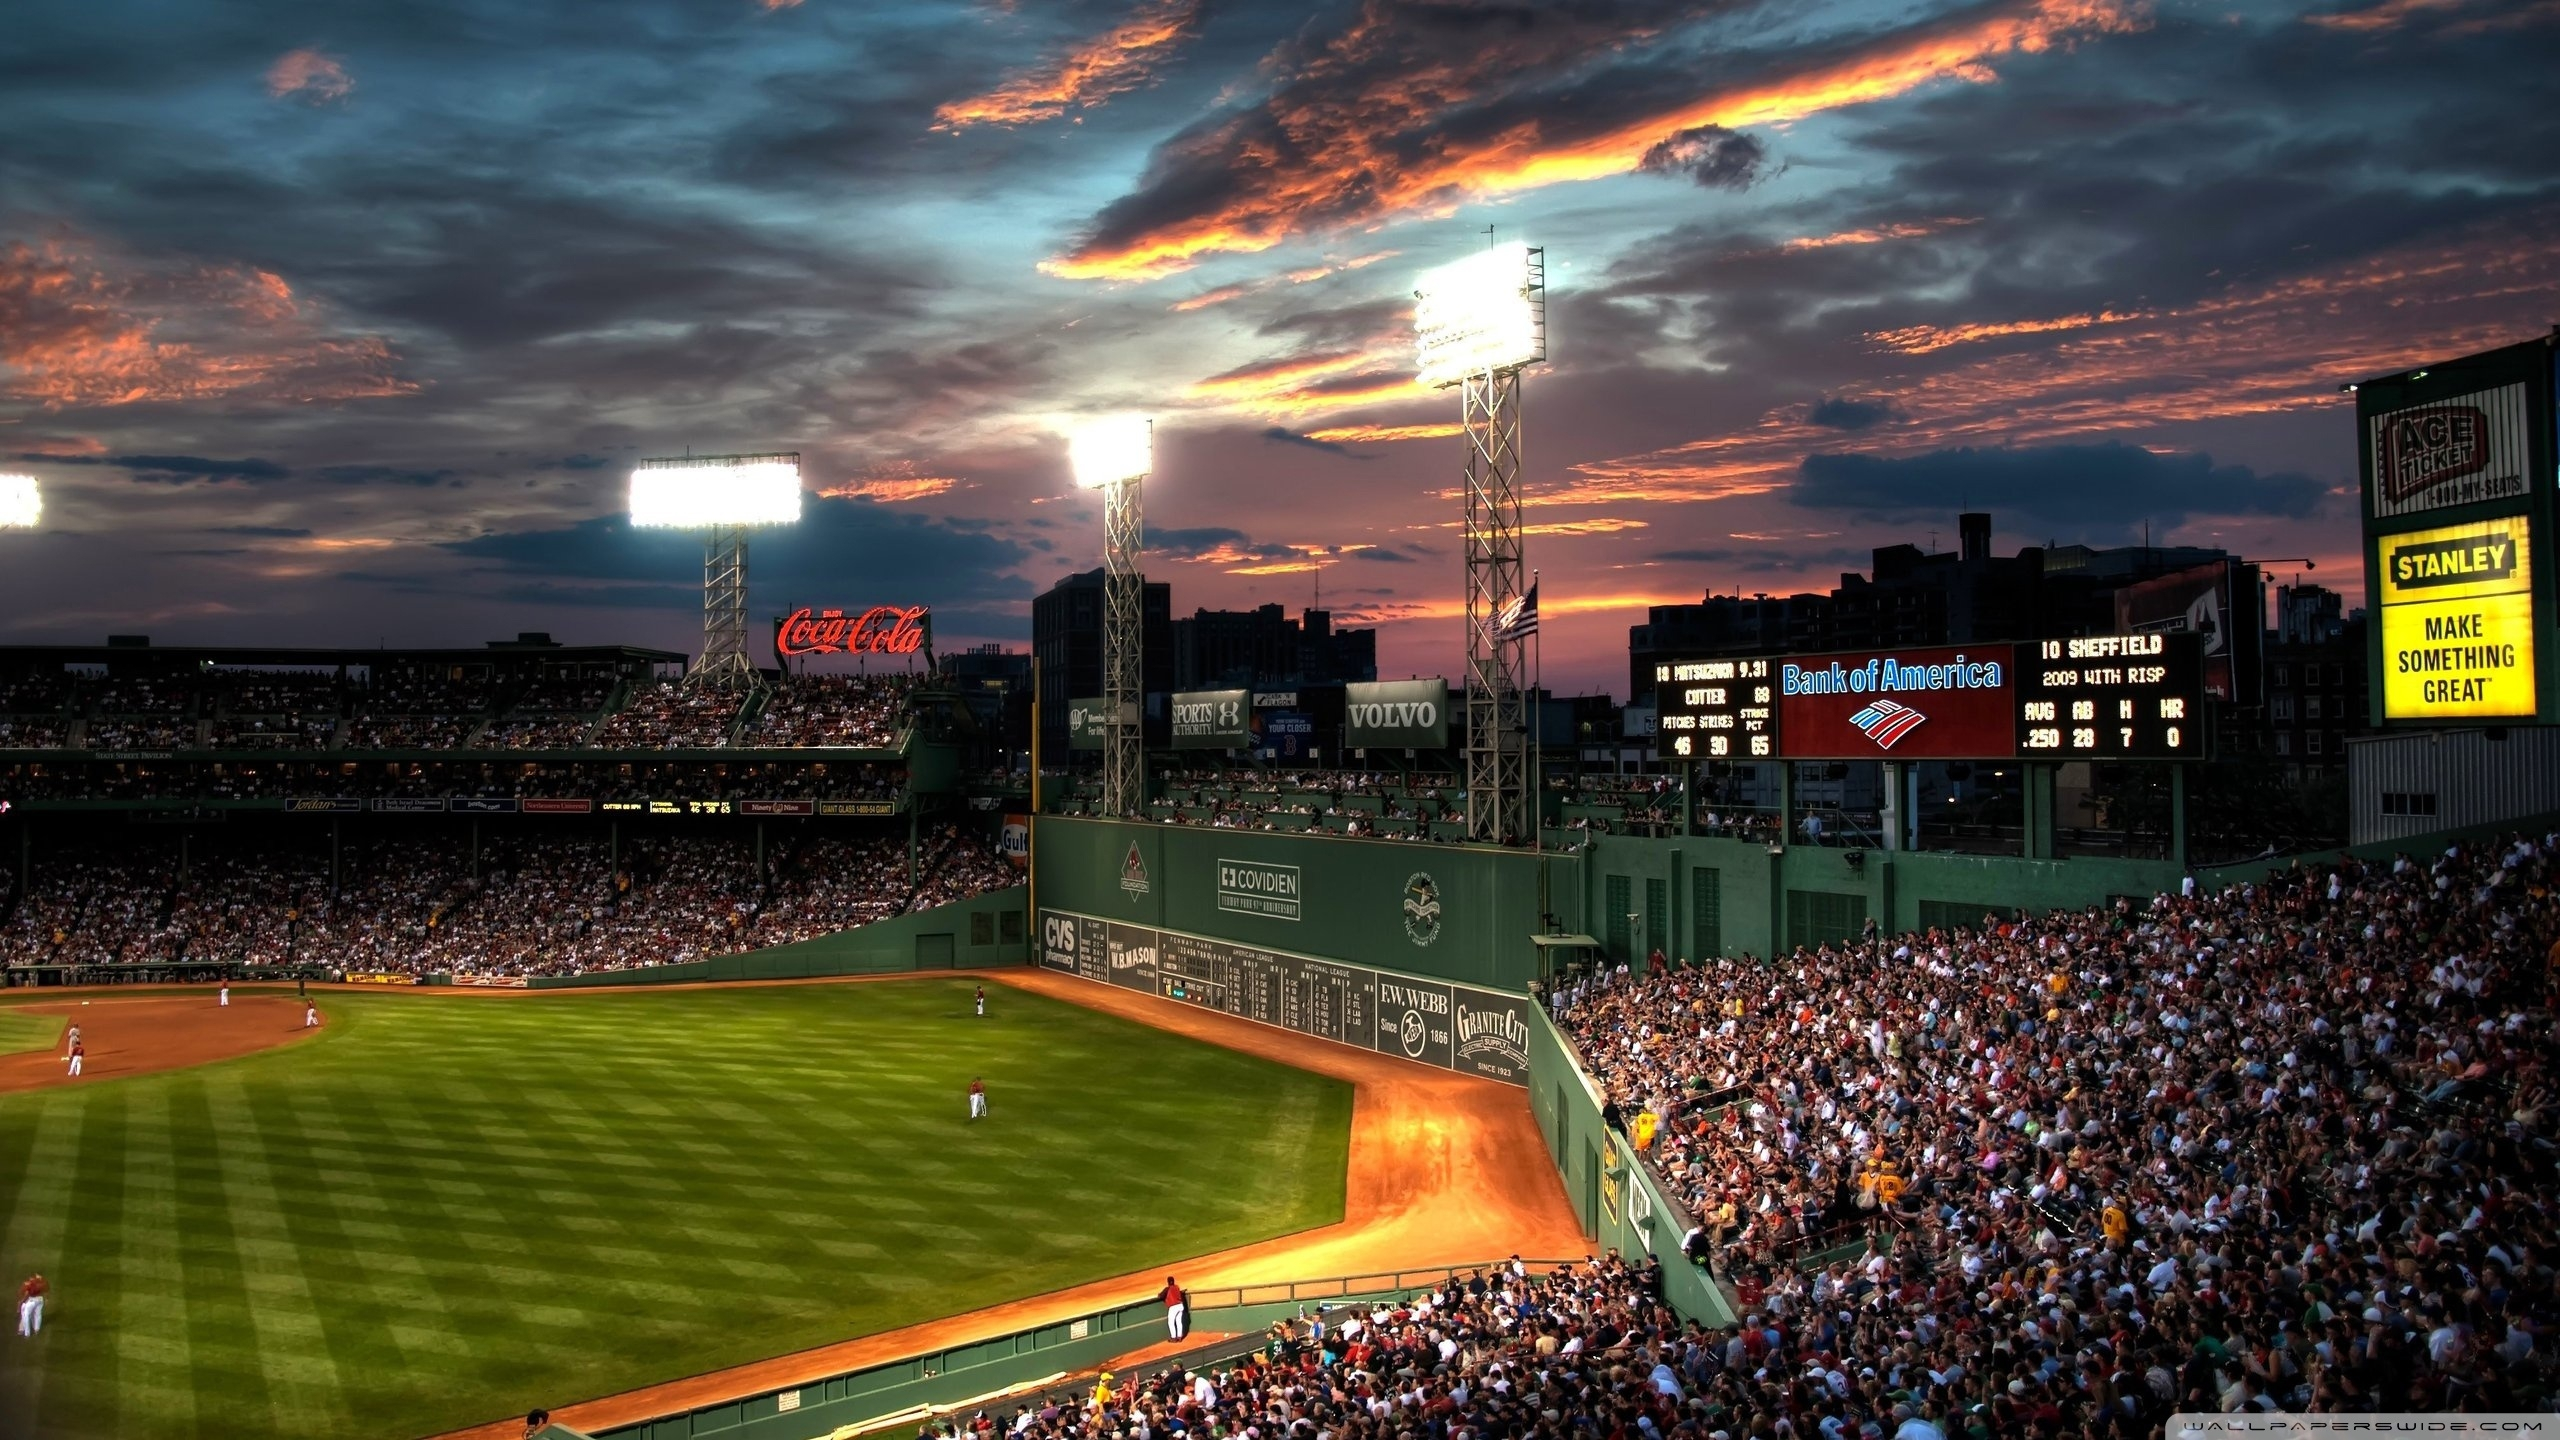 fenway park, boston, massachusetts - baseball park ❤ 4k hd desktop